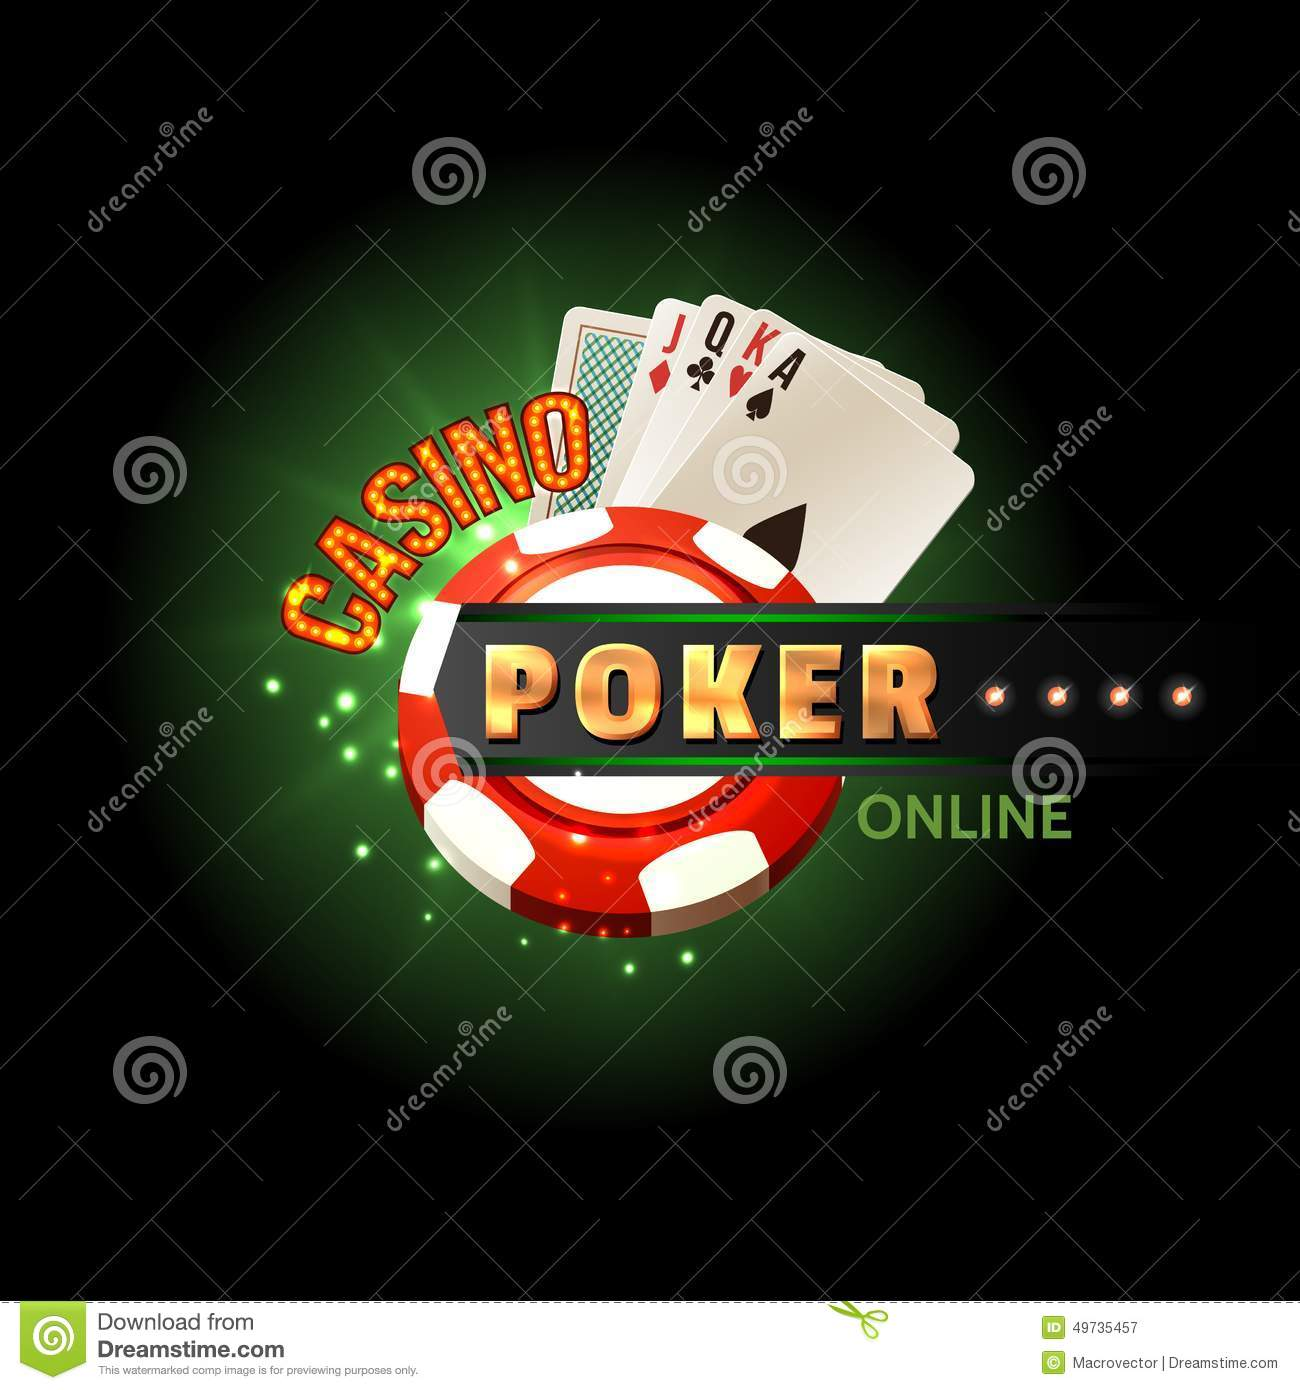 Casino technology poker online - 827213